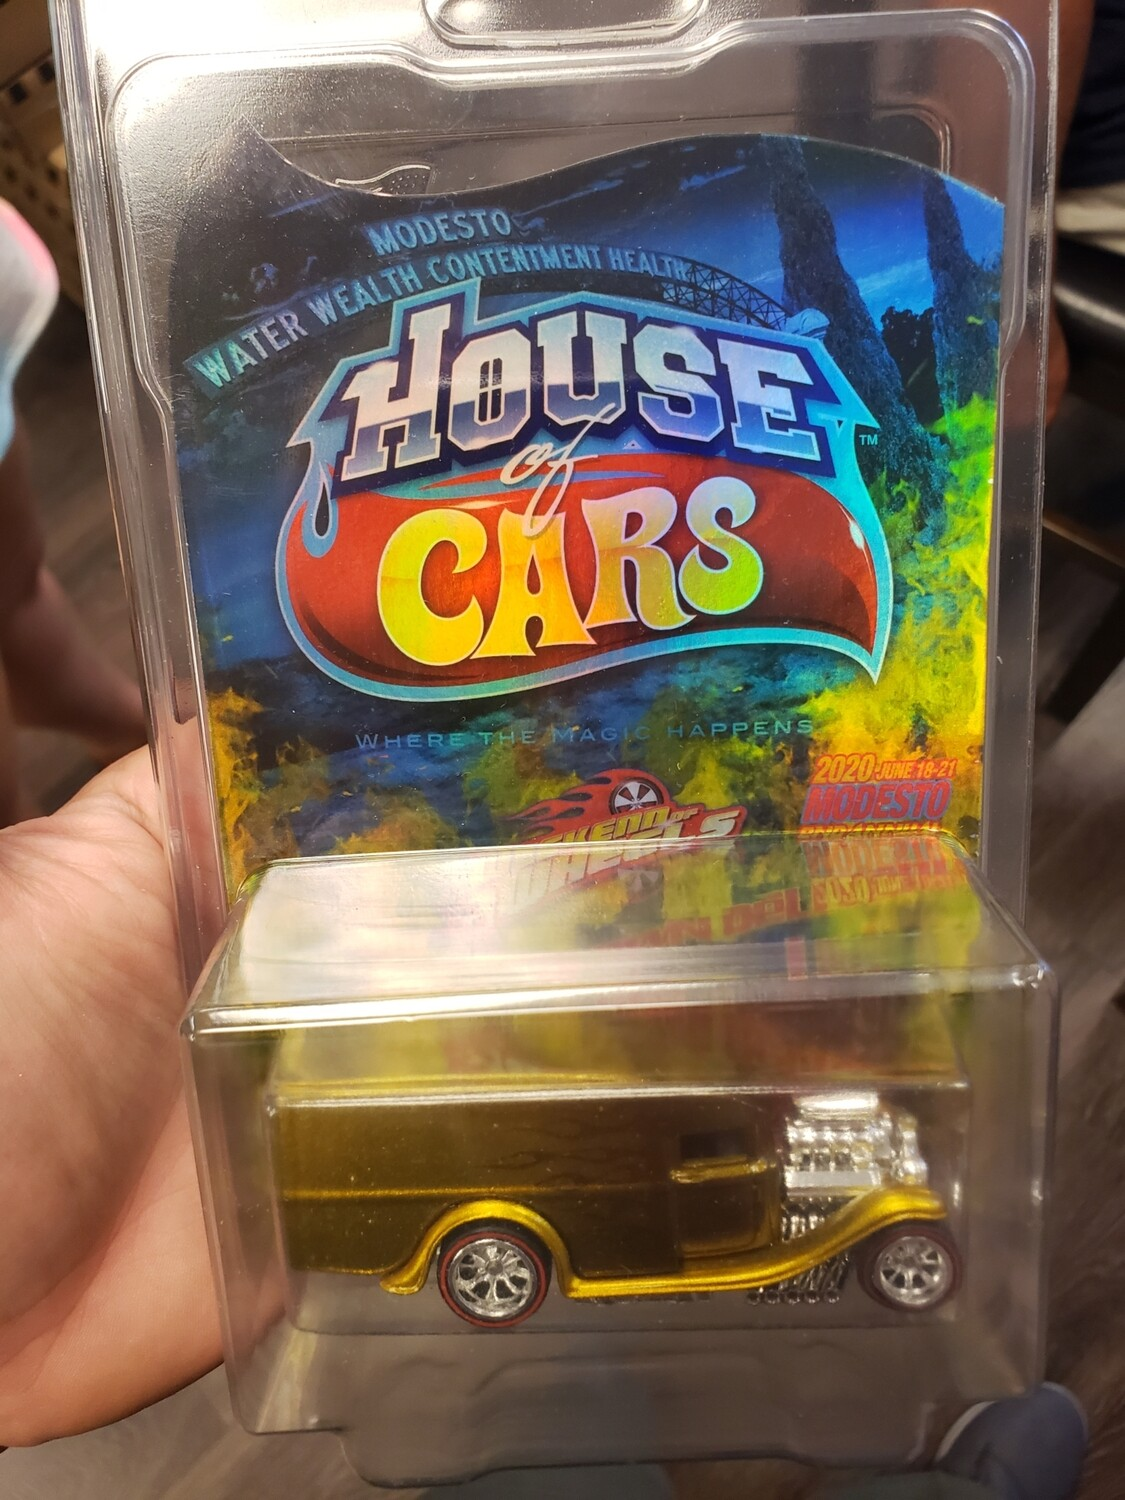 Weekend of Wheels Souvenir Blown Delivery 1 of 1 Hologram Card